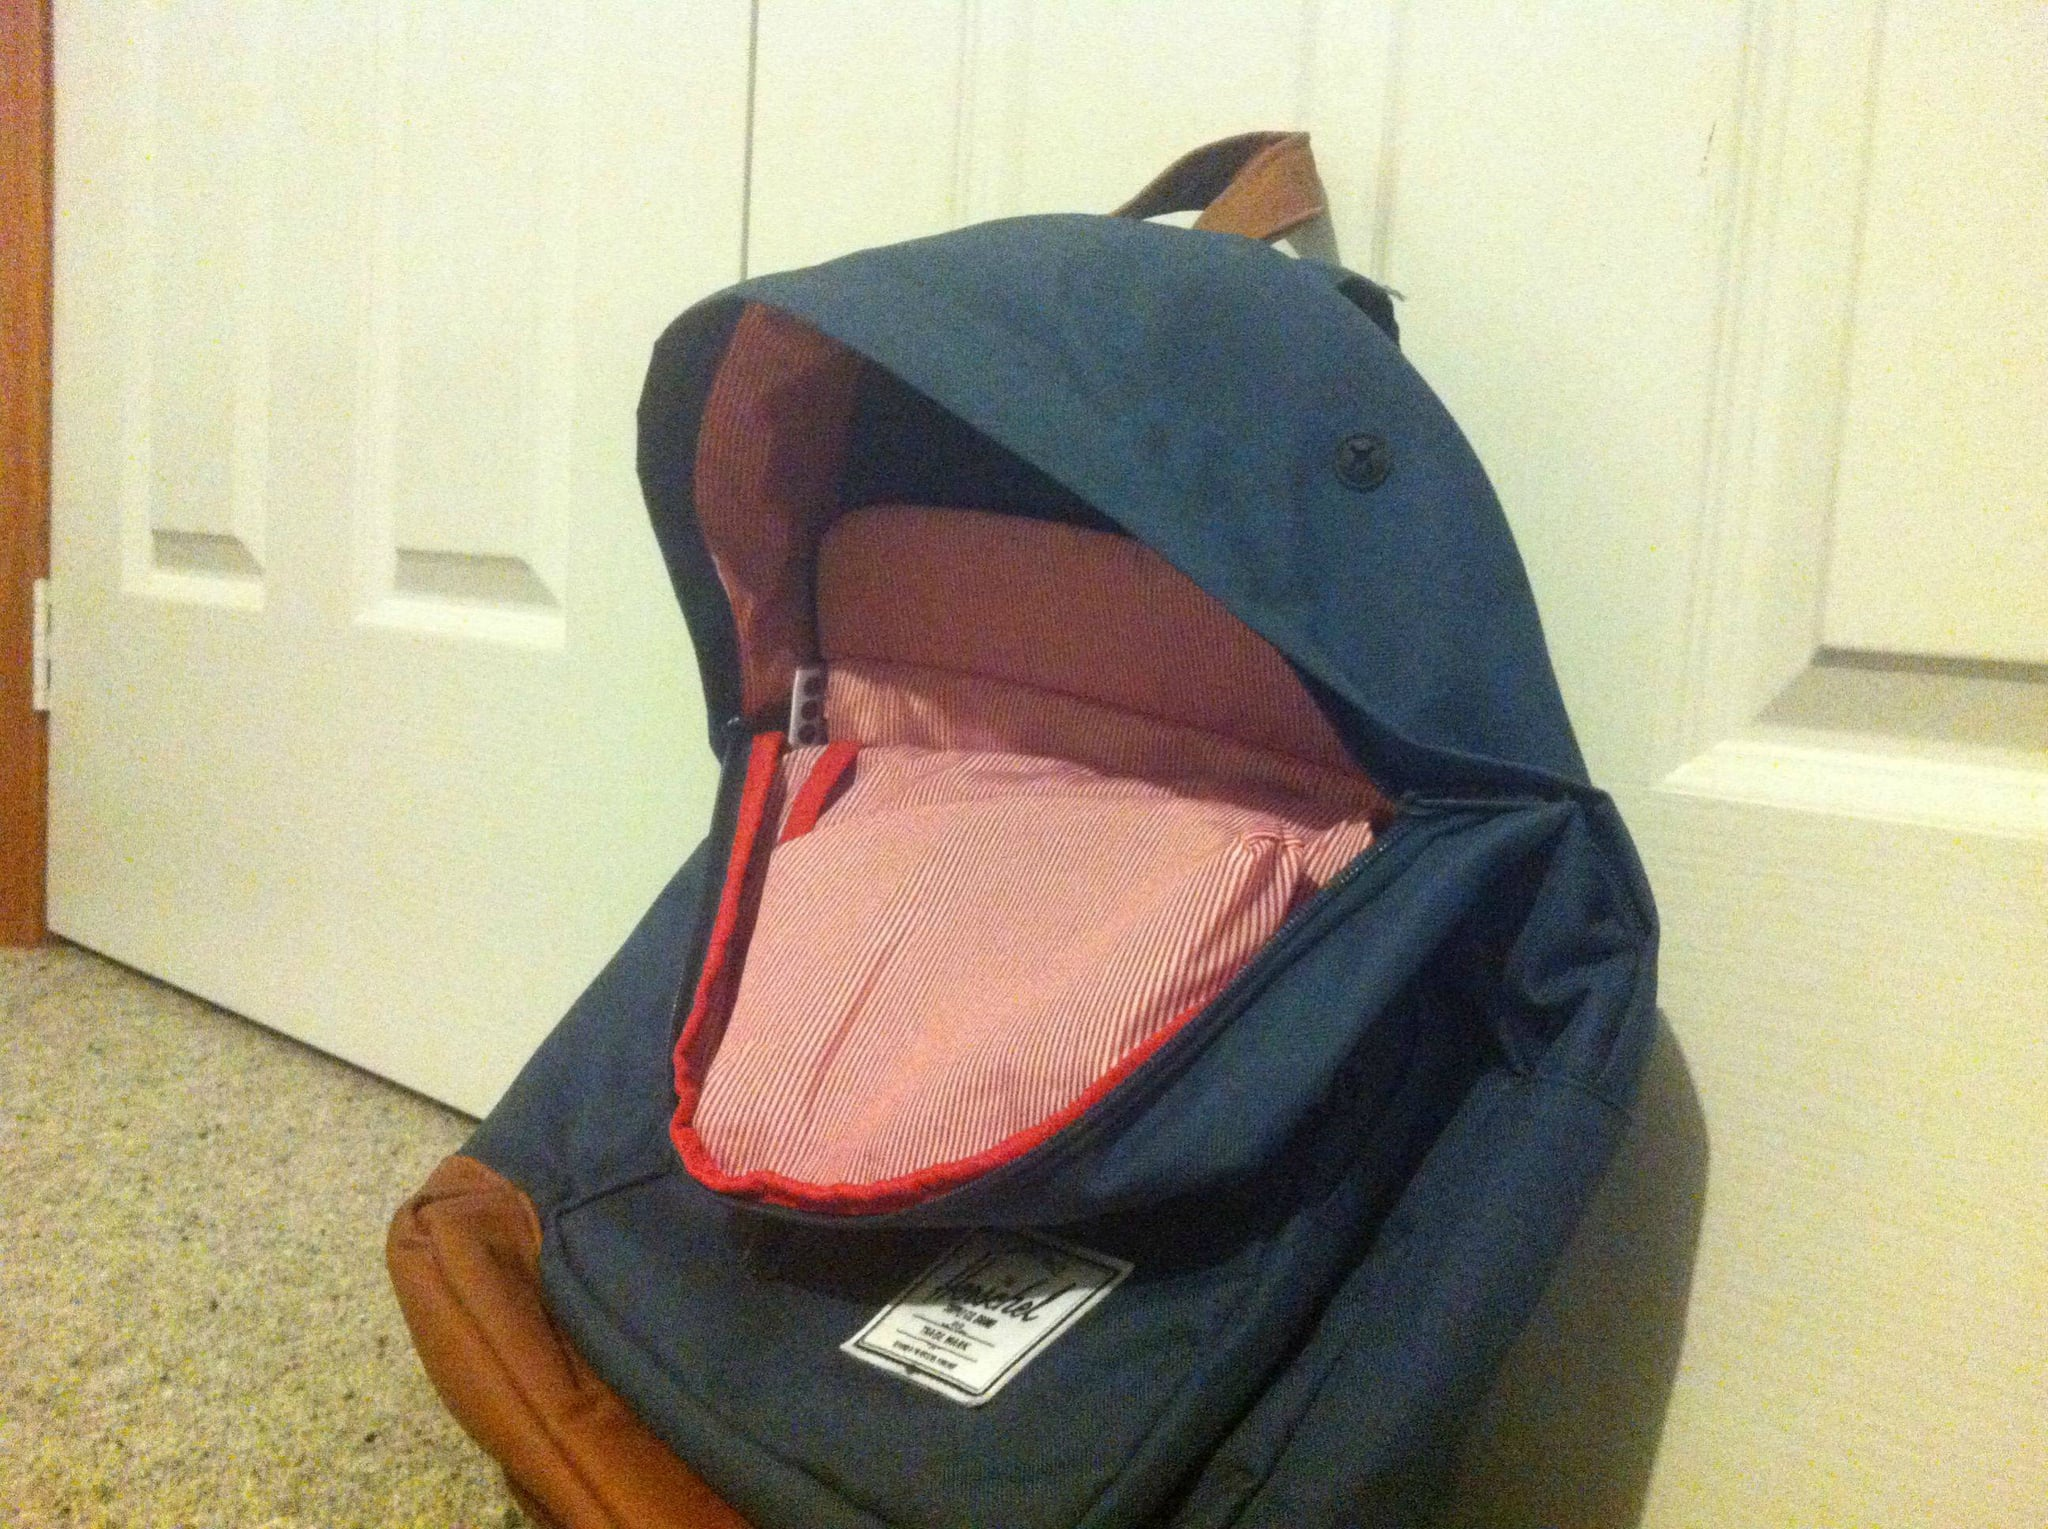 """""""Just realised my open bag looks like a happy whale. My life is now complete."""" Source: Reddit user MrPatch97 via Imgur"""